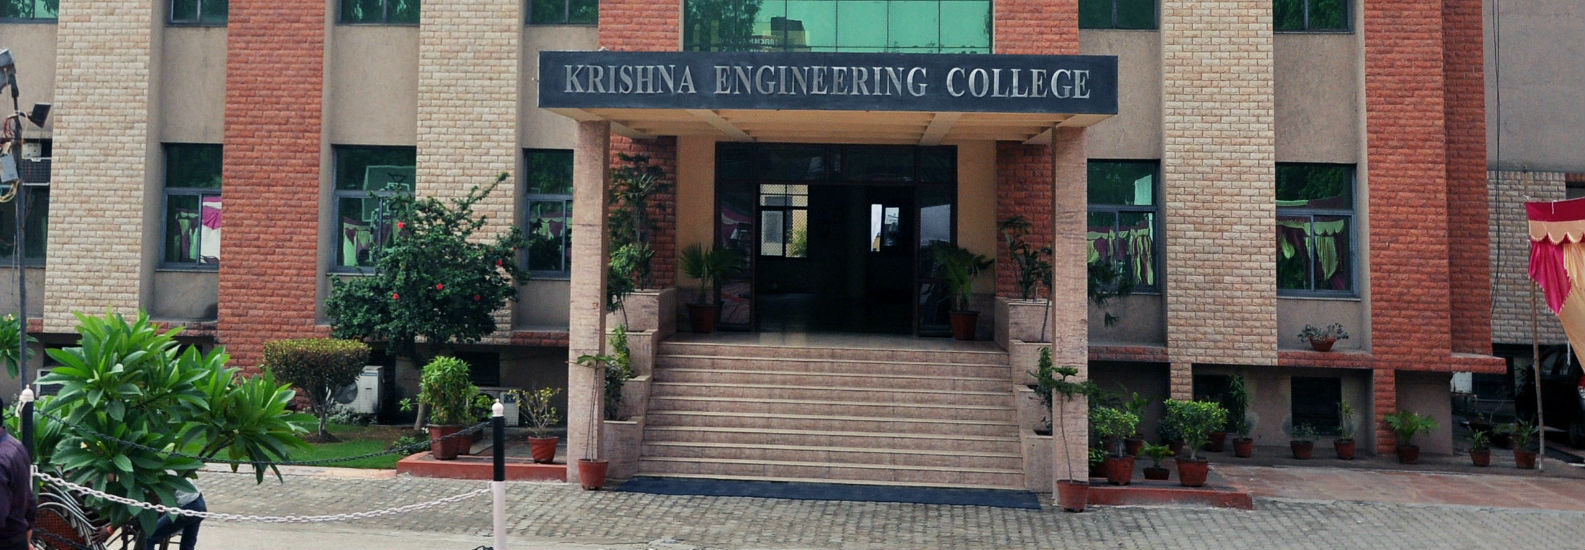 BTech and MTech Admission 2014-15, Krishna Engineering College (KEC), Ghaziabad